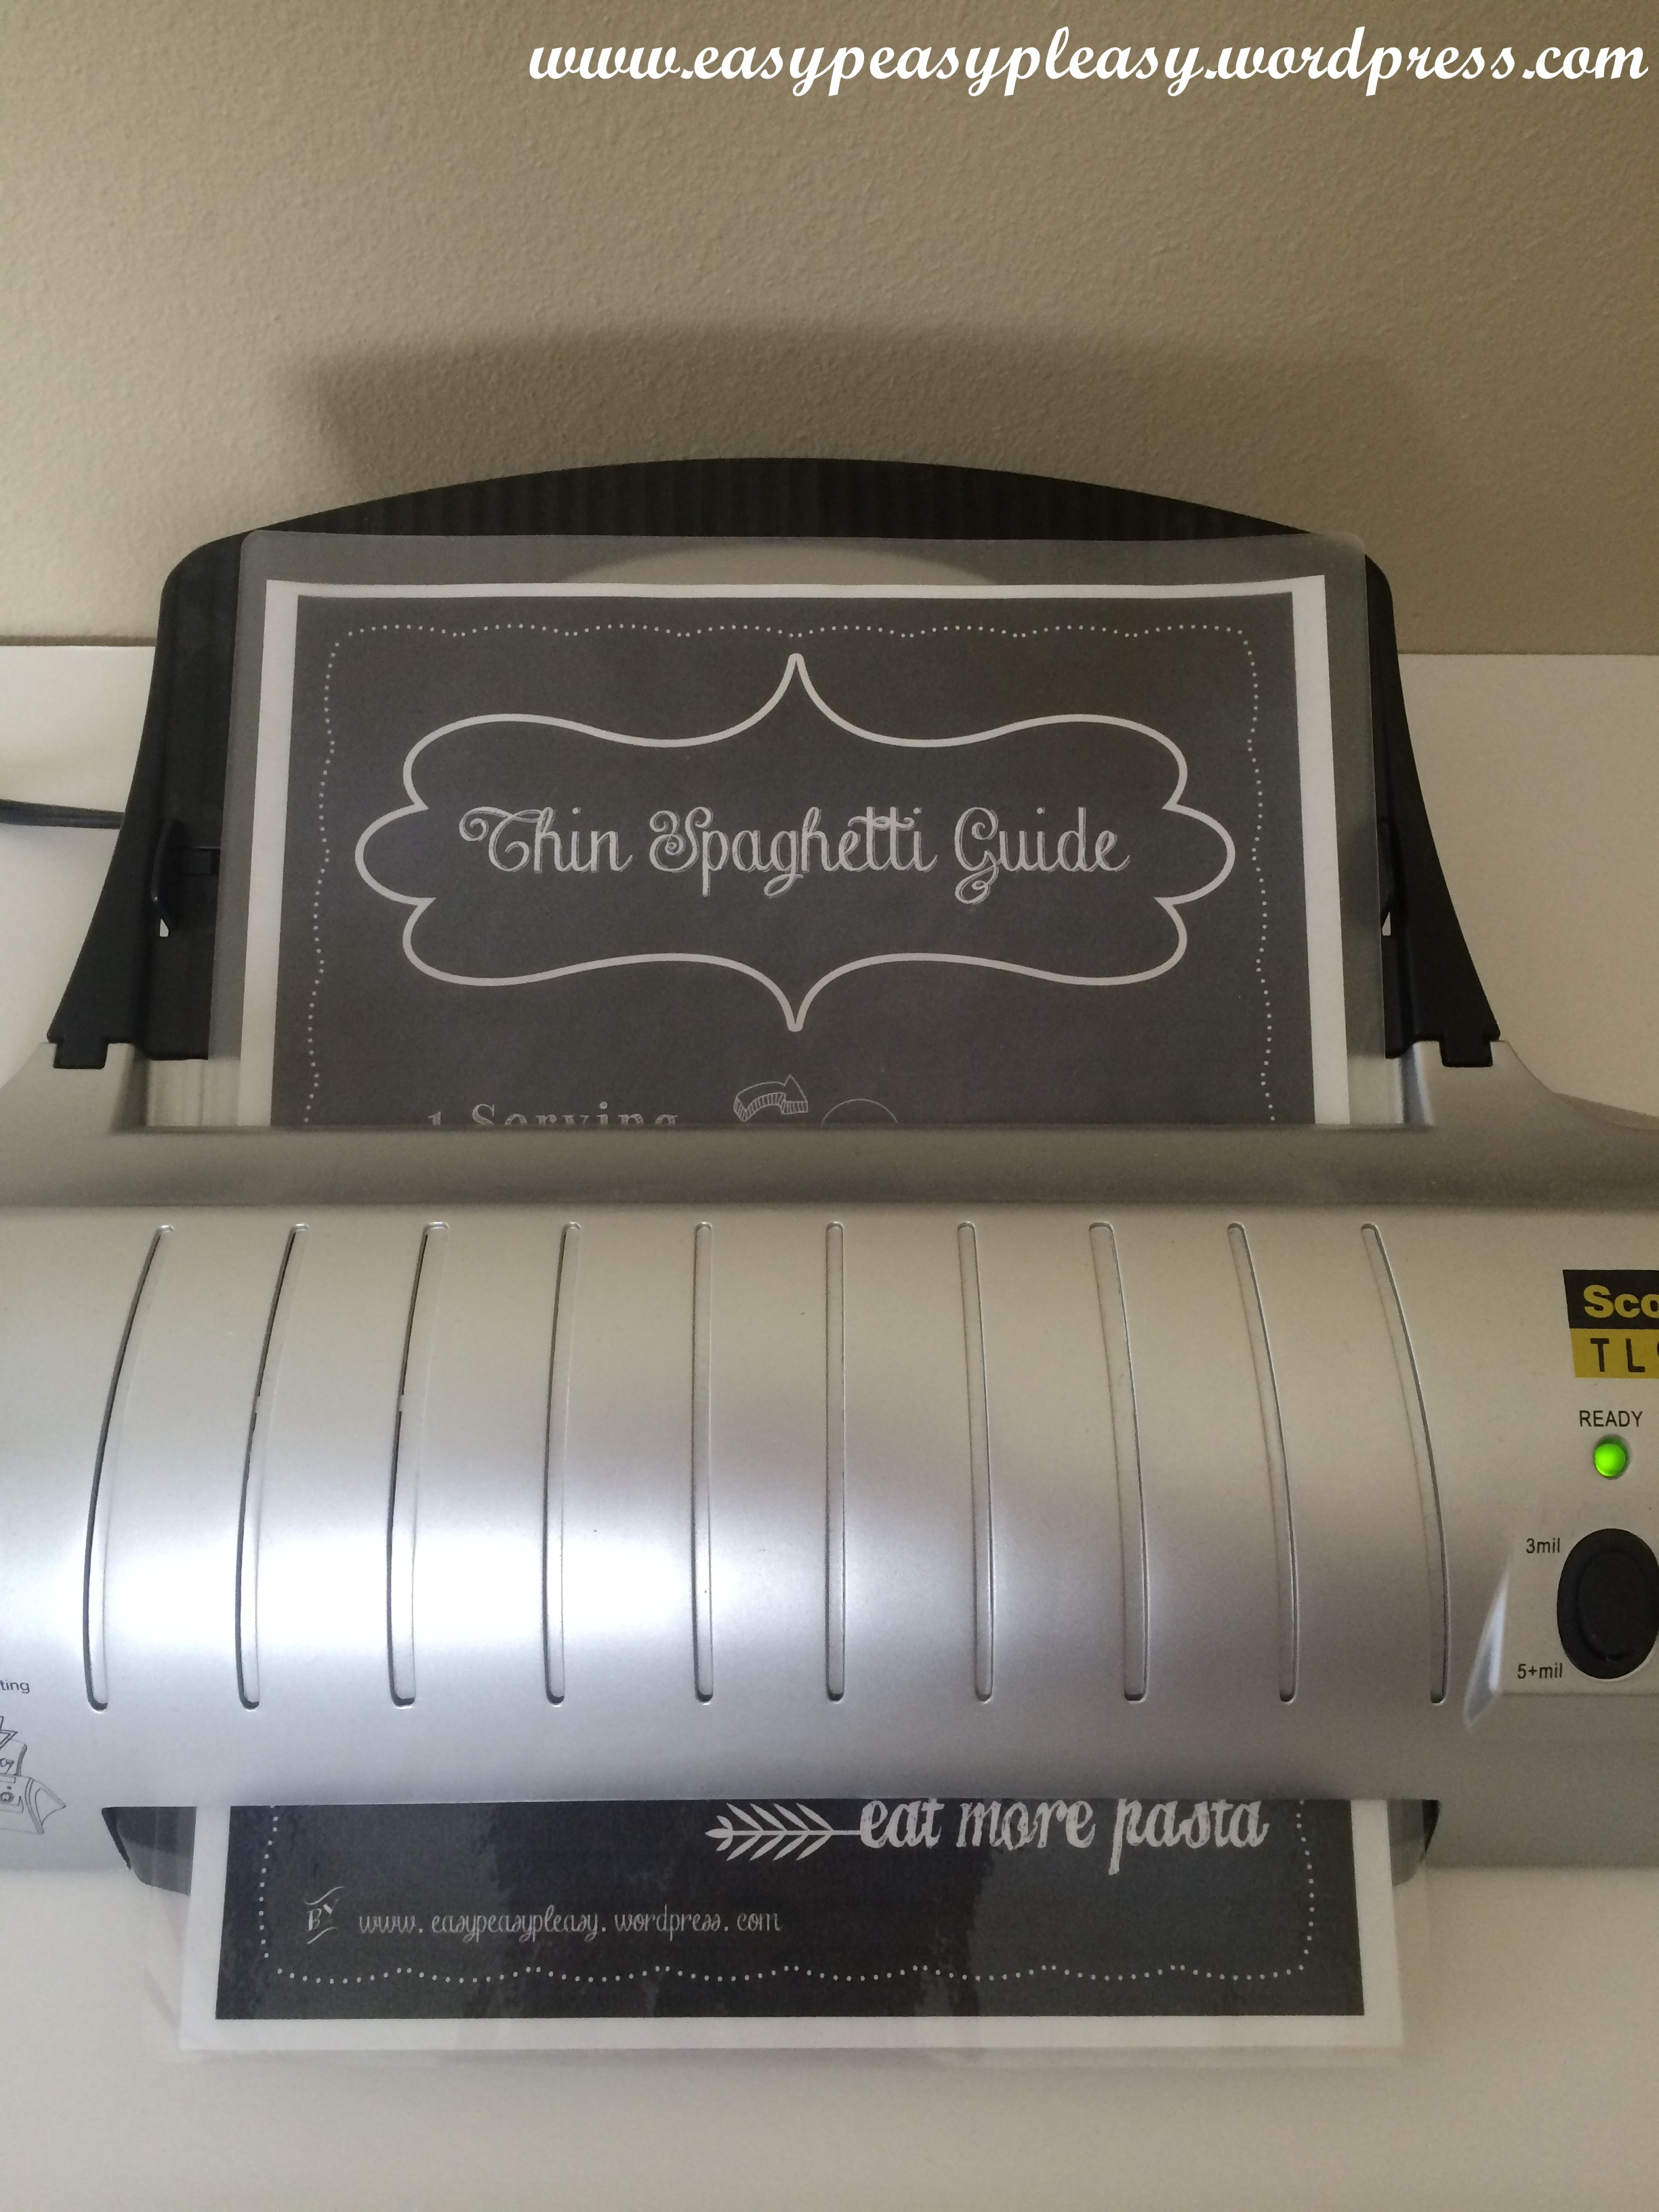 A quick run through the laminator will make this printable easy to wip down.